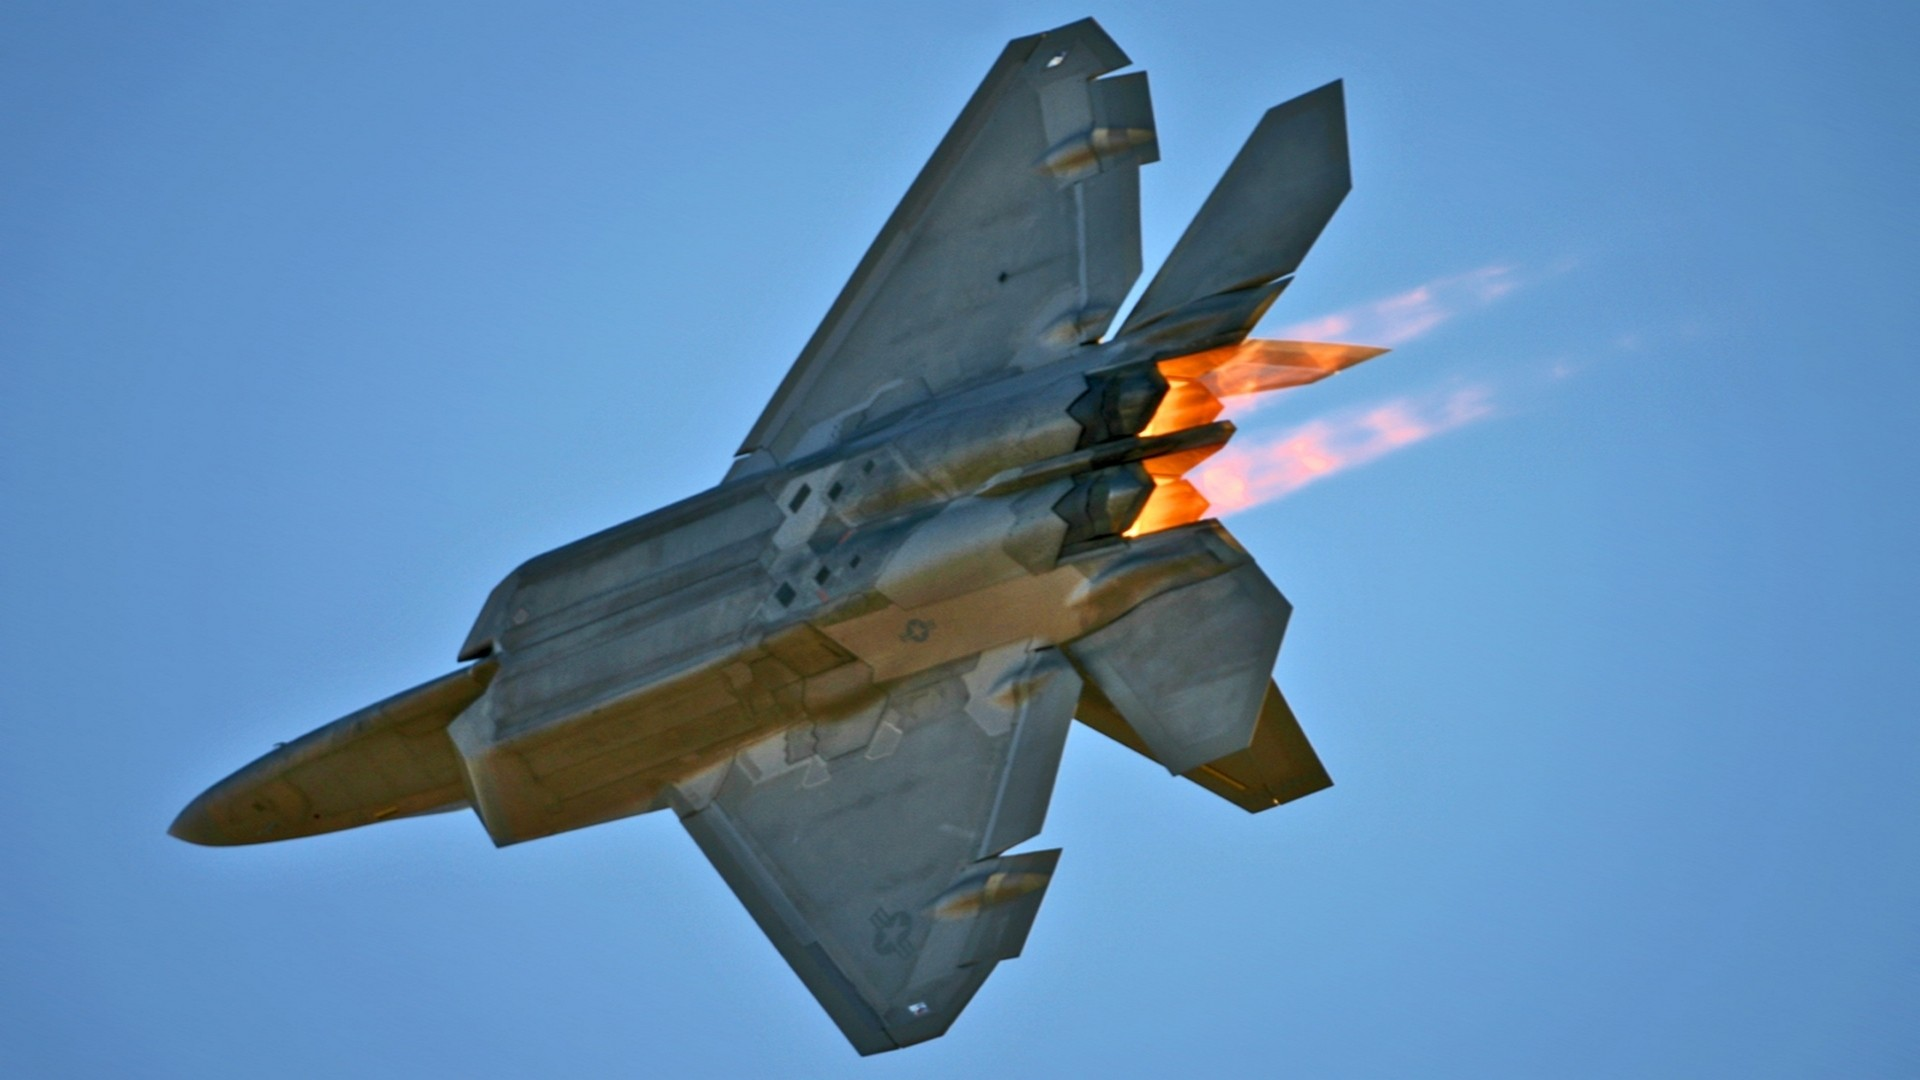 Download F 22 Raptor Wallpaper 1920x1080 Wallpoper 387679 1920x1080